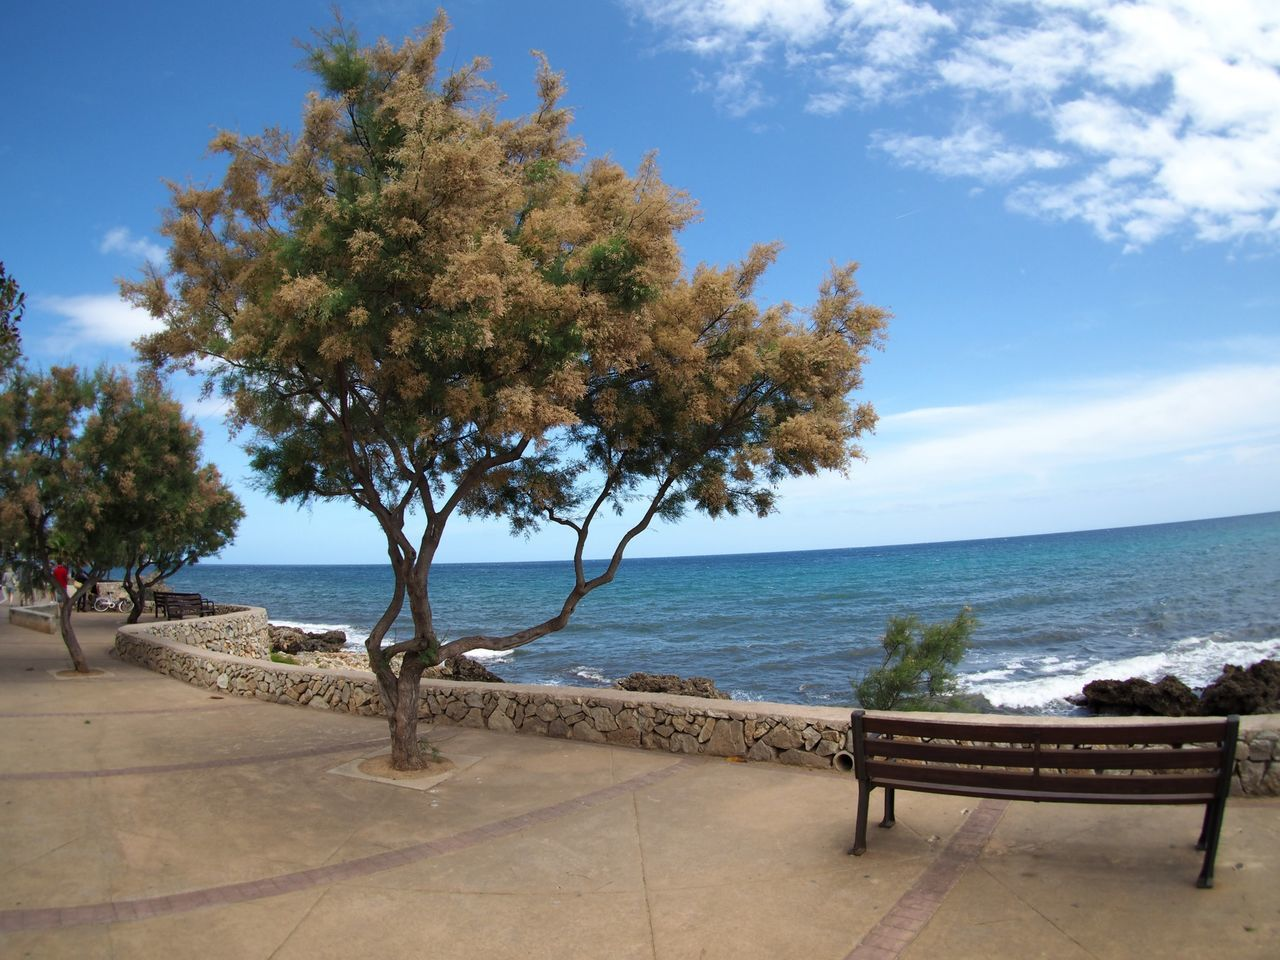 sea, tree, horizon over water, water, nature, sky, beauty in nature, tranquility, no people, scenics, beach, day, outdoors